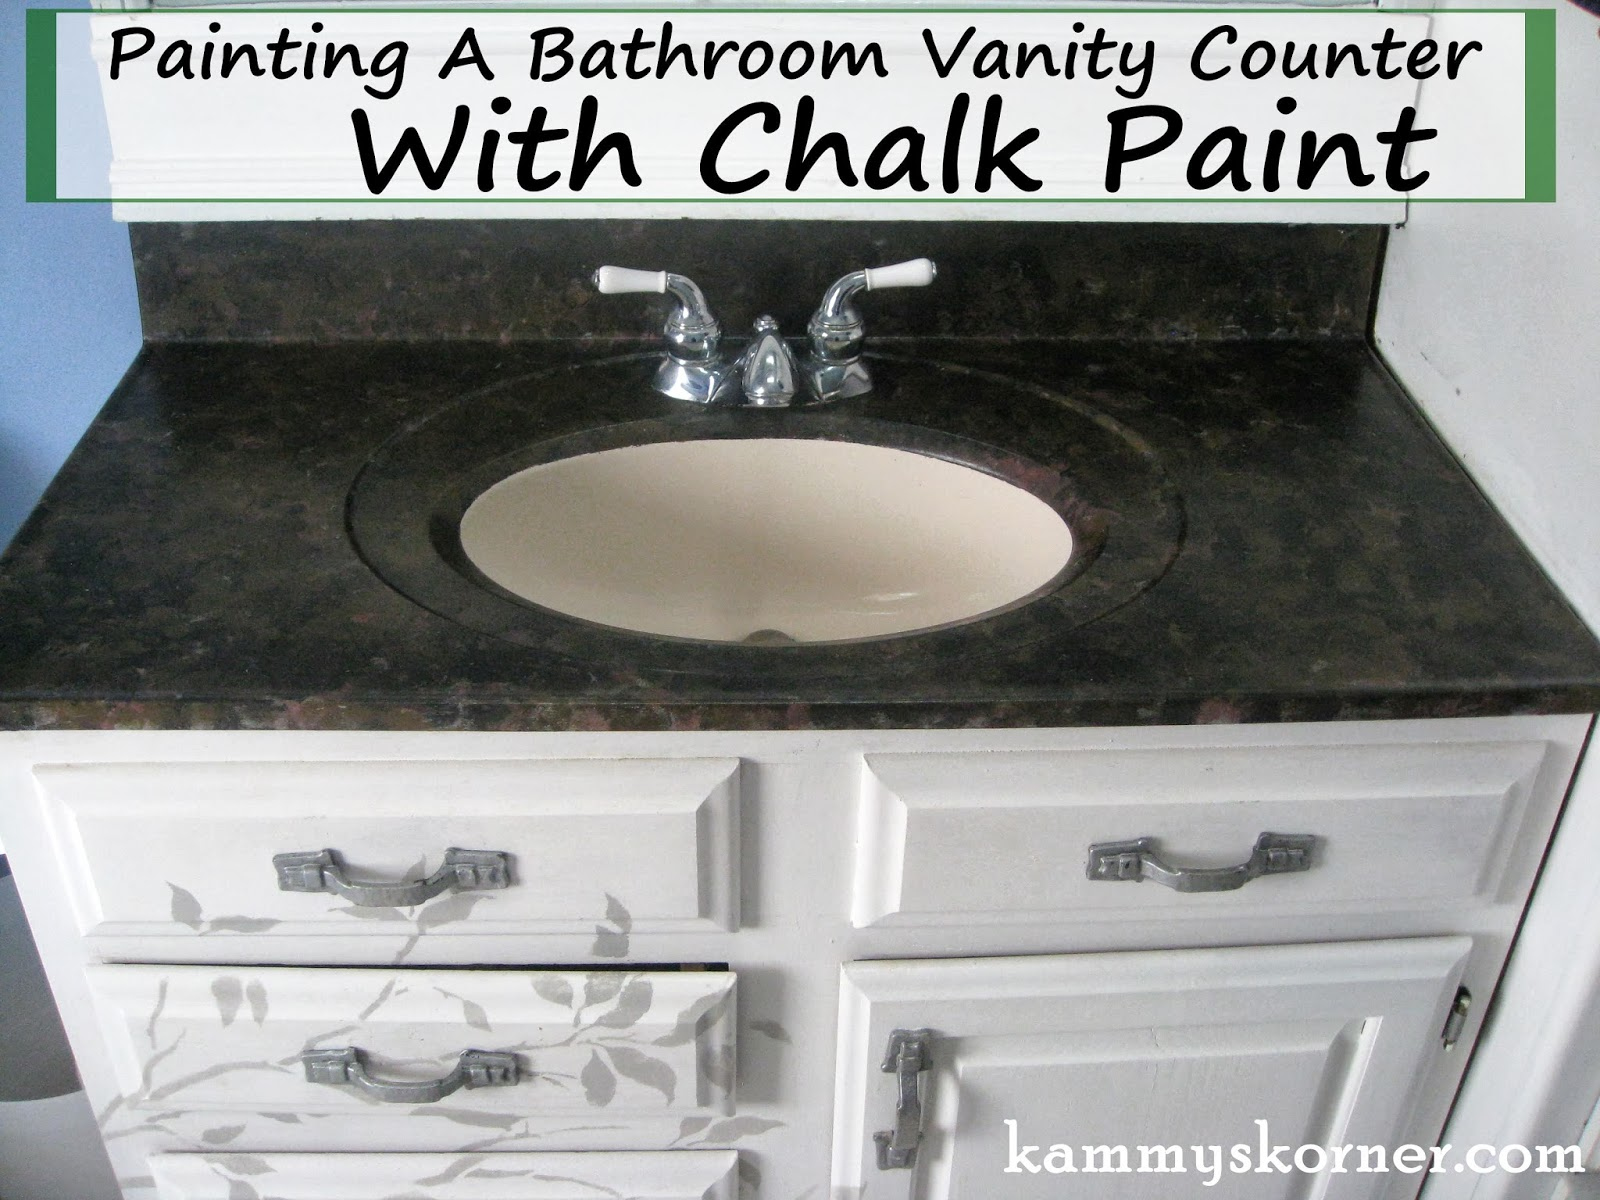 Painting Bathroom Vanity Ideas Beauteous Someday Crafts Painting A Bathroom Vanity Counter With Chalk Paint Design Inspiration